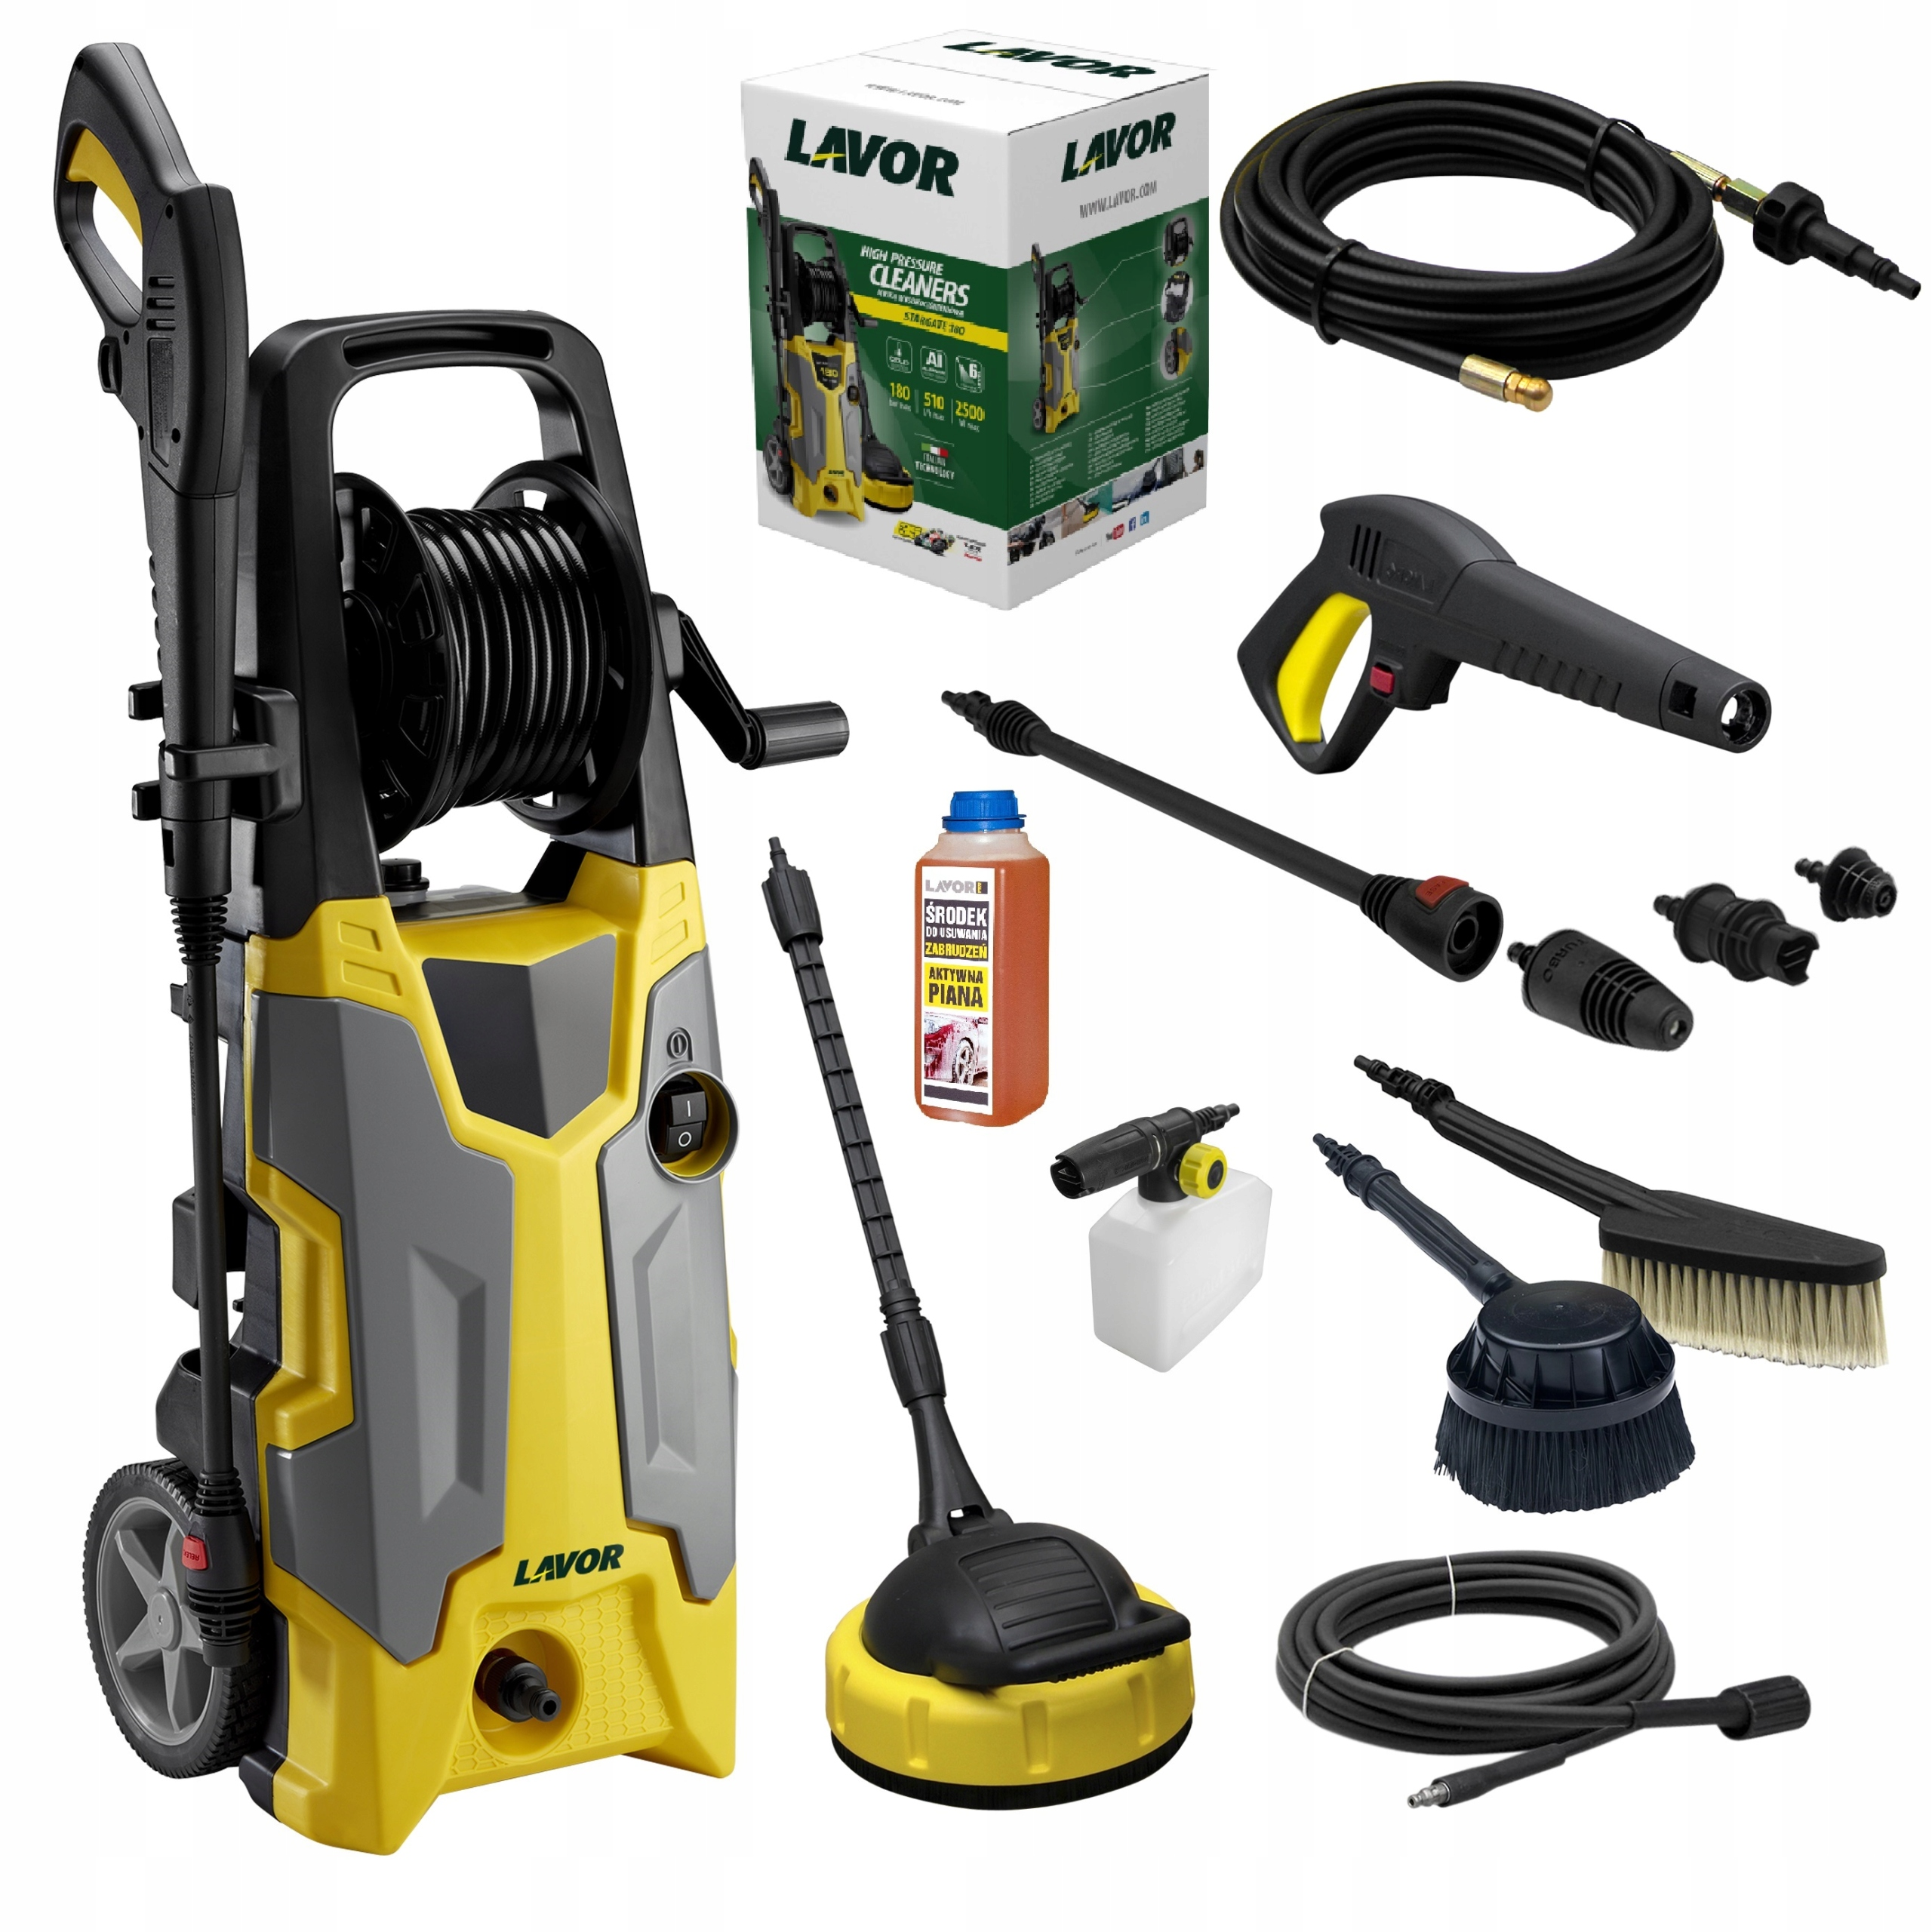 STRONG PRESSURE WASHER Stargate 270ew Bar 2500W